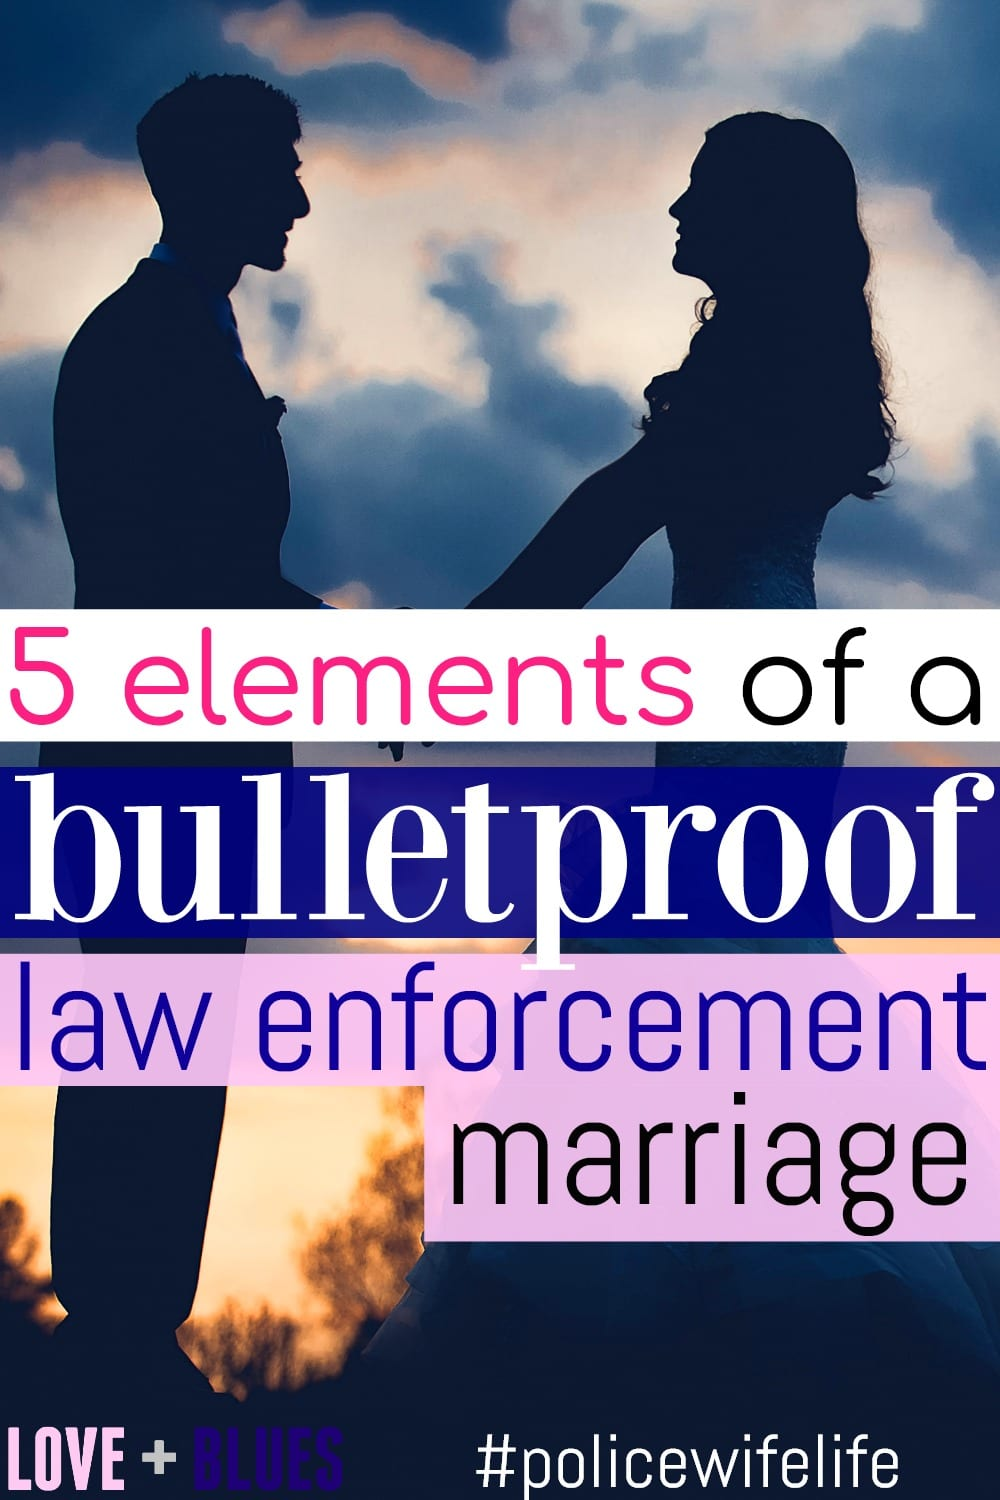 This is spot on... I agree with every single point! THIS is what it takes to make a police marriage work. #policewife #lawenforcement